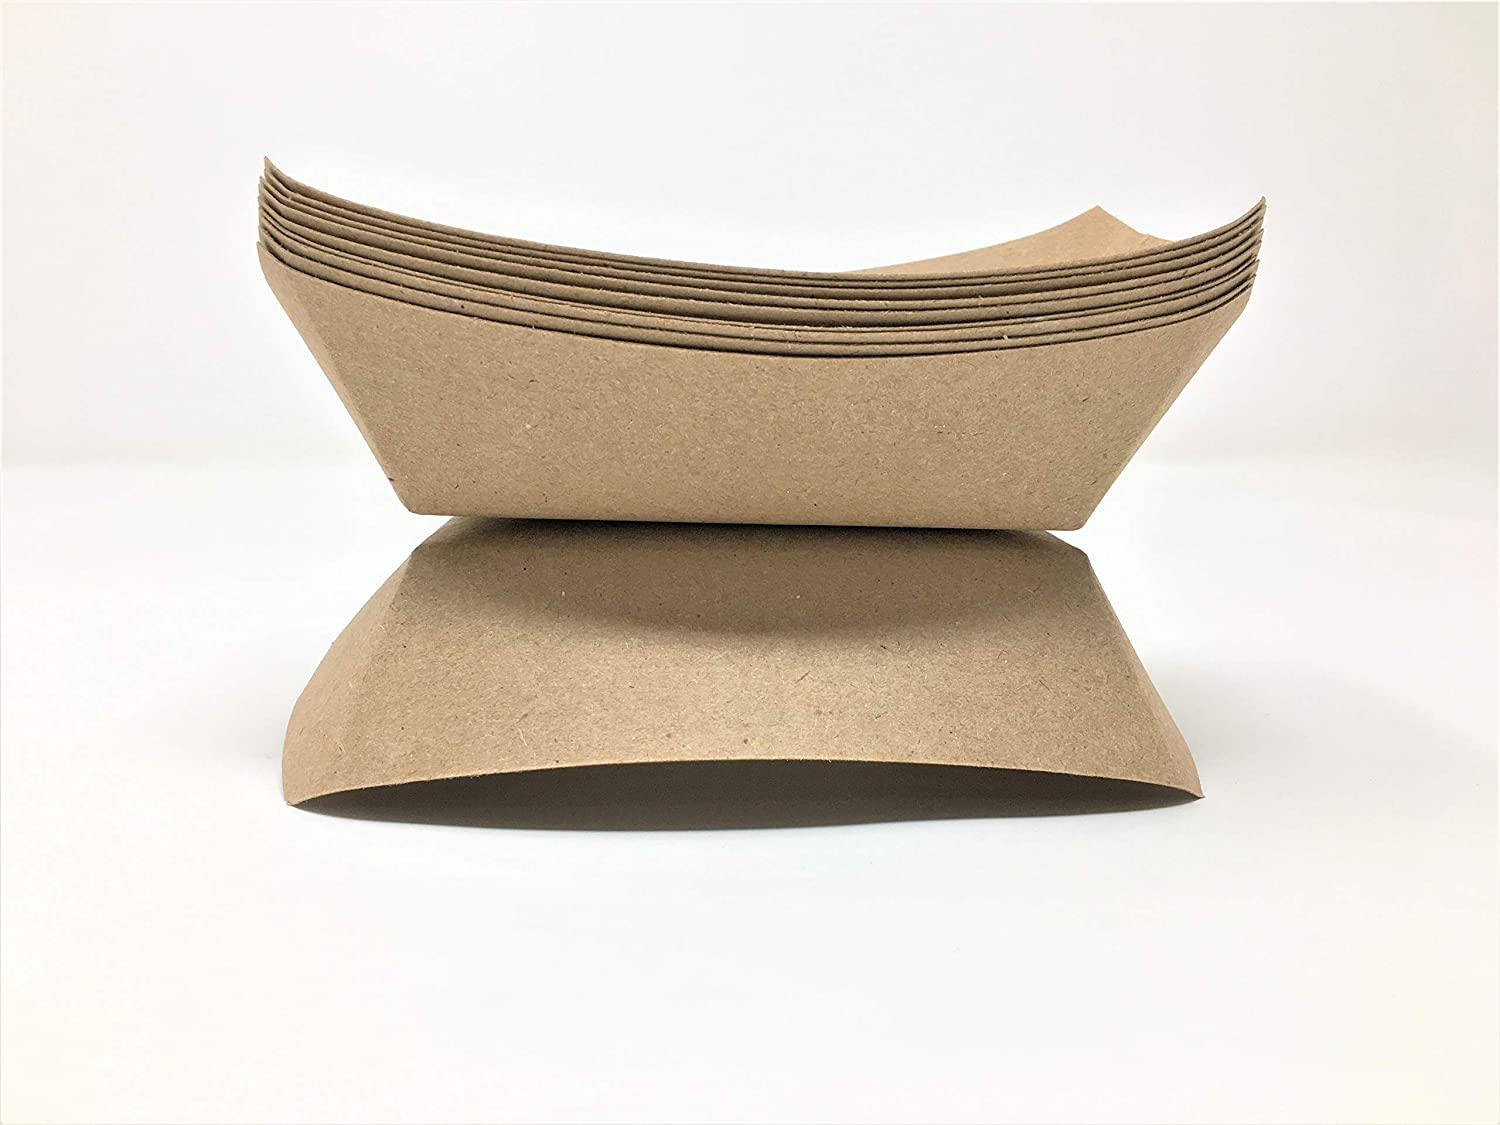 Mr. Miracle Kraft Paper Food Tray. 1-Pound Size. Pack of 250. Disposable, Recyclable and Fully Biodegradable. Made in USA